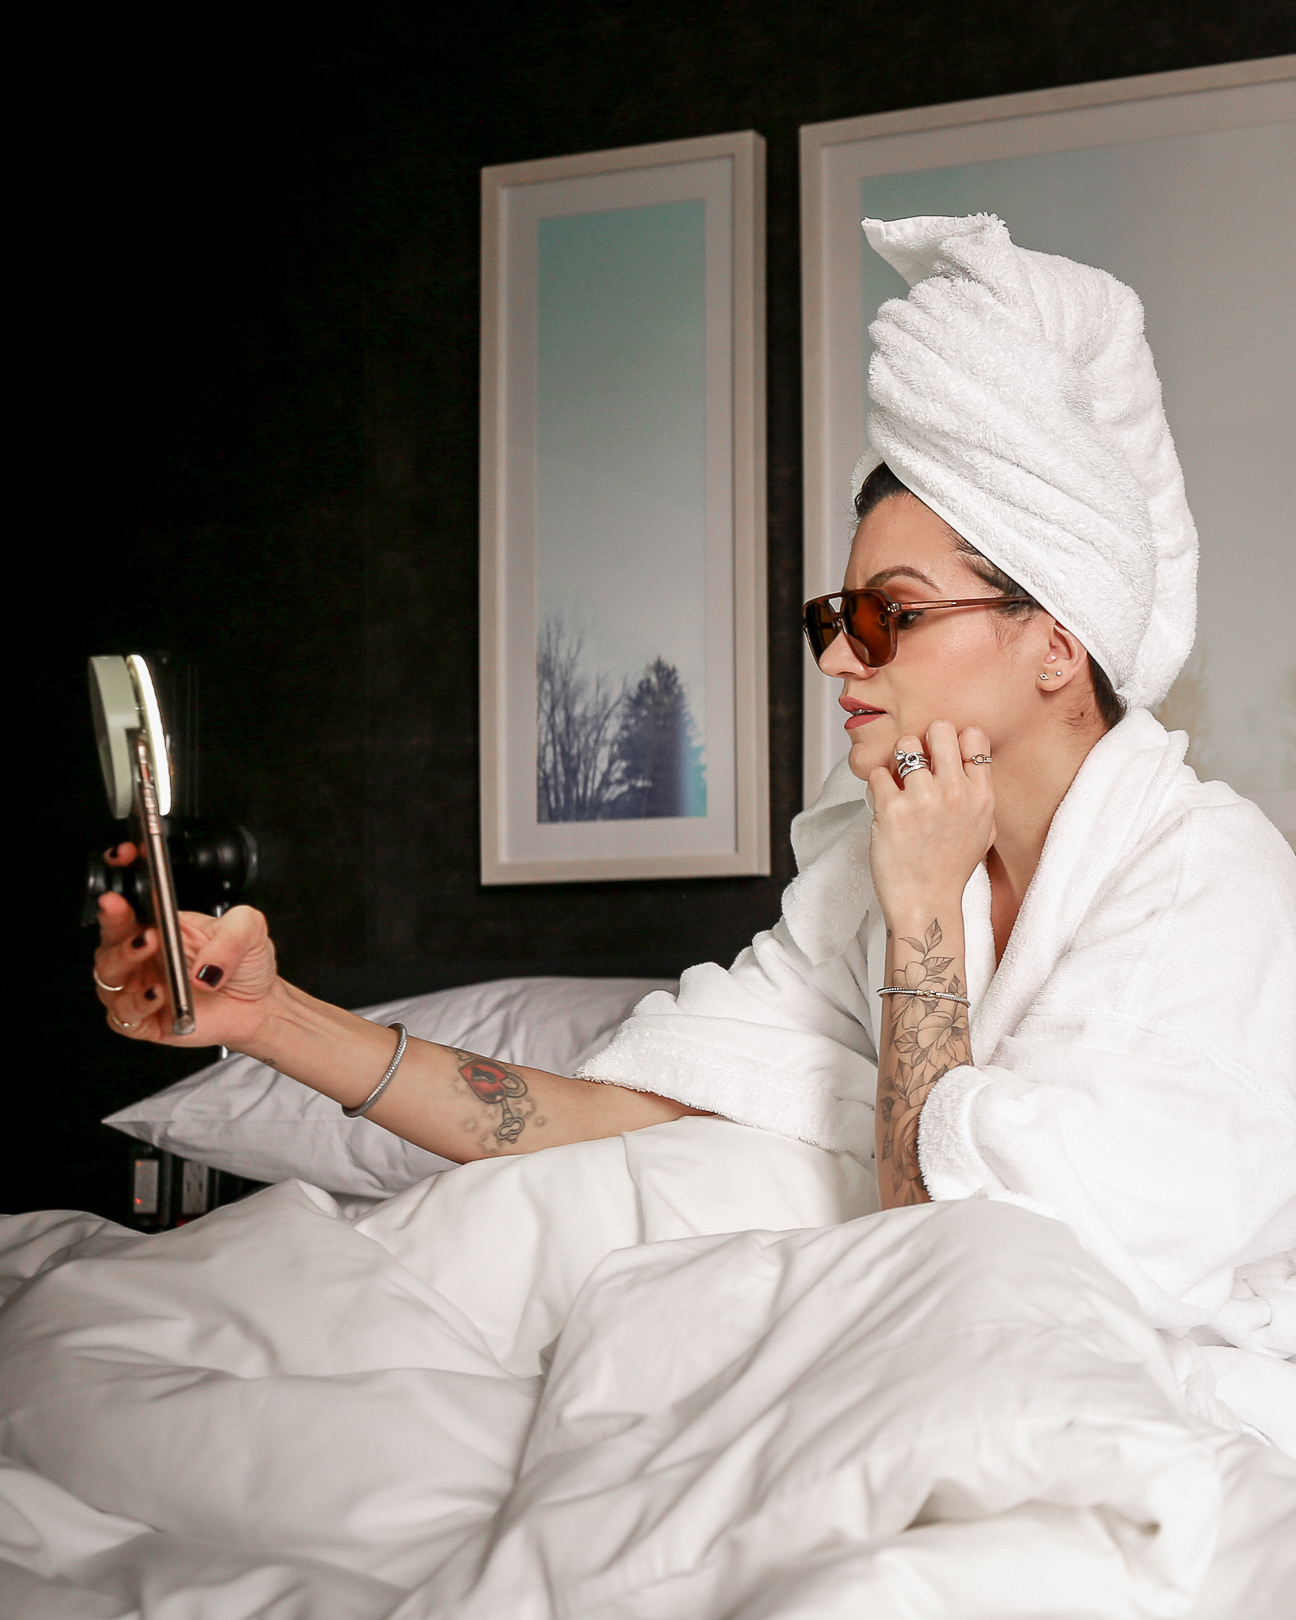 Nathalie Martin with her Bonlook Jerry sunglasses at the Anndore House Hotel in Toronto, woahstyle.com_4292.jpg